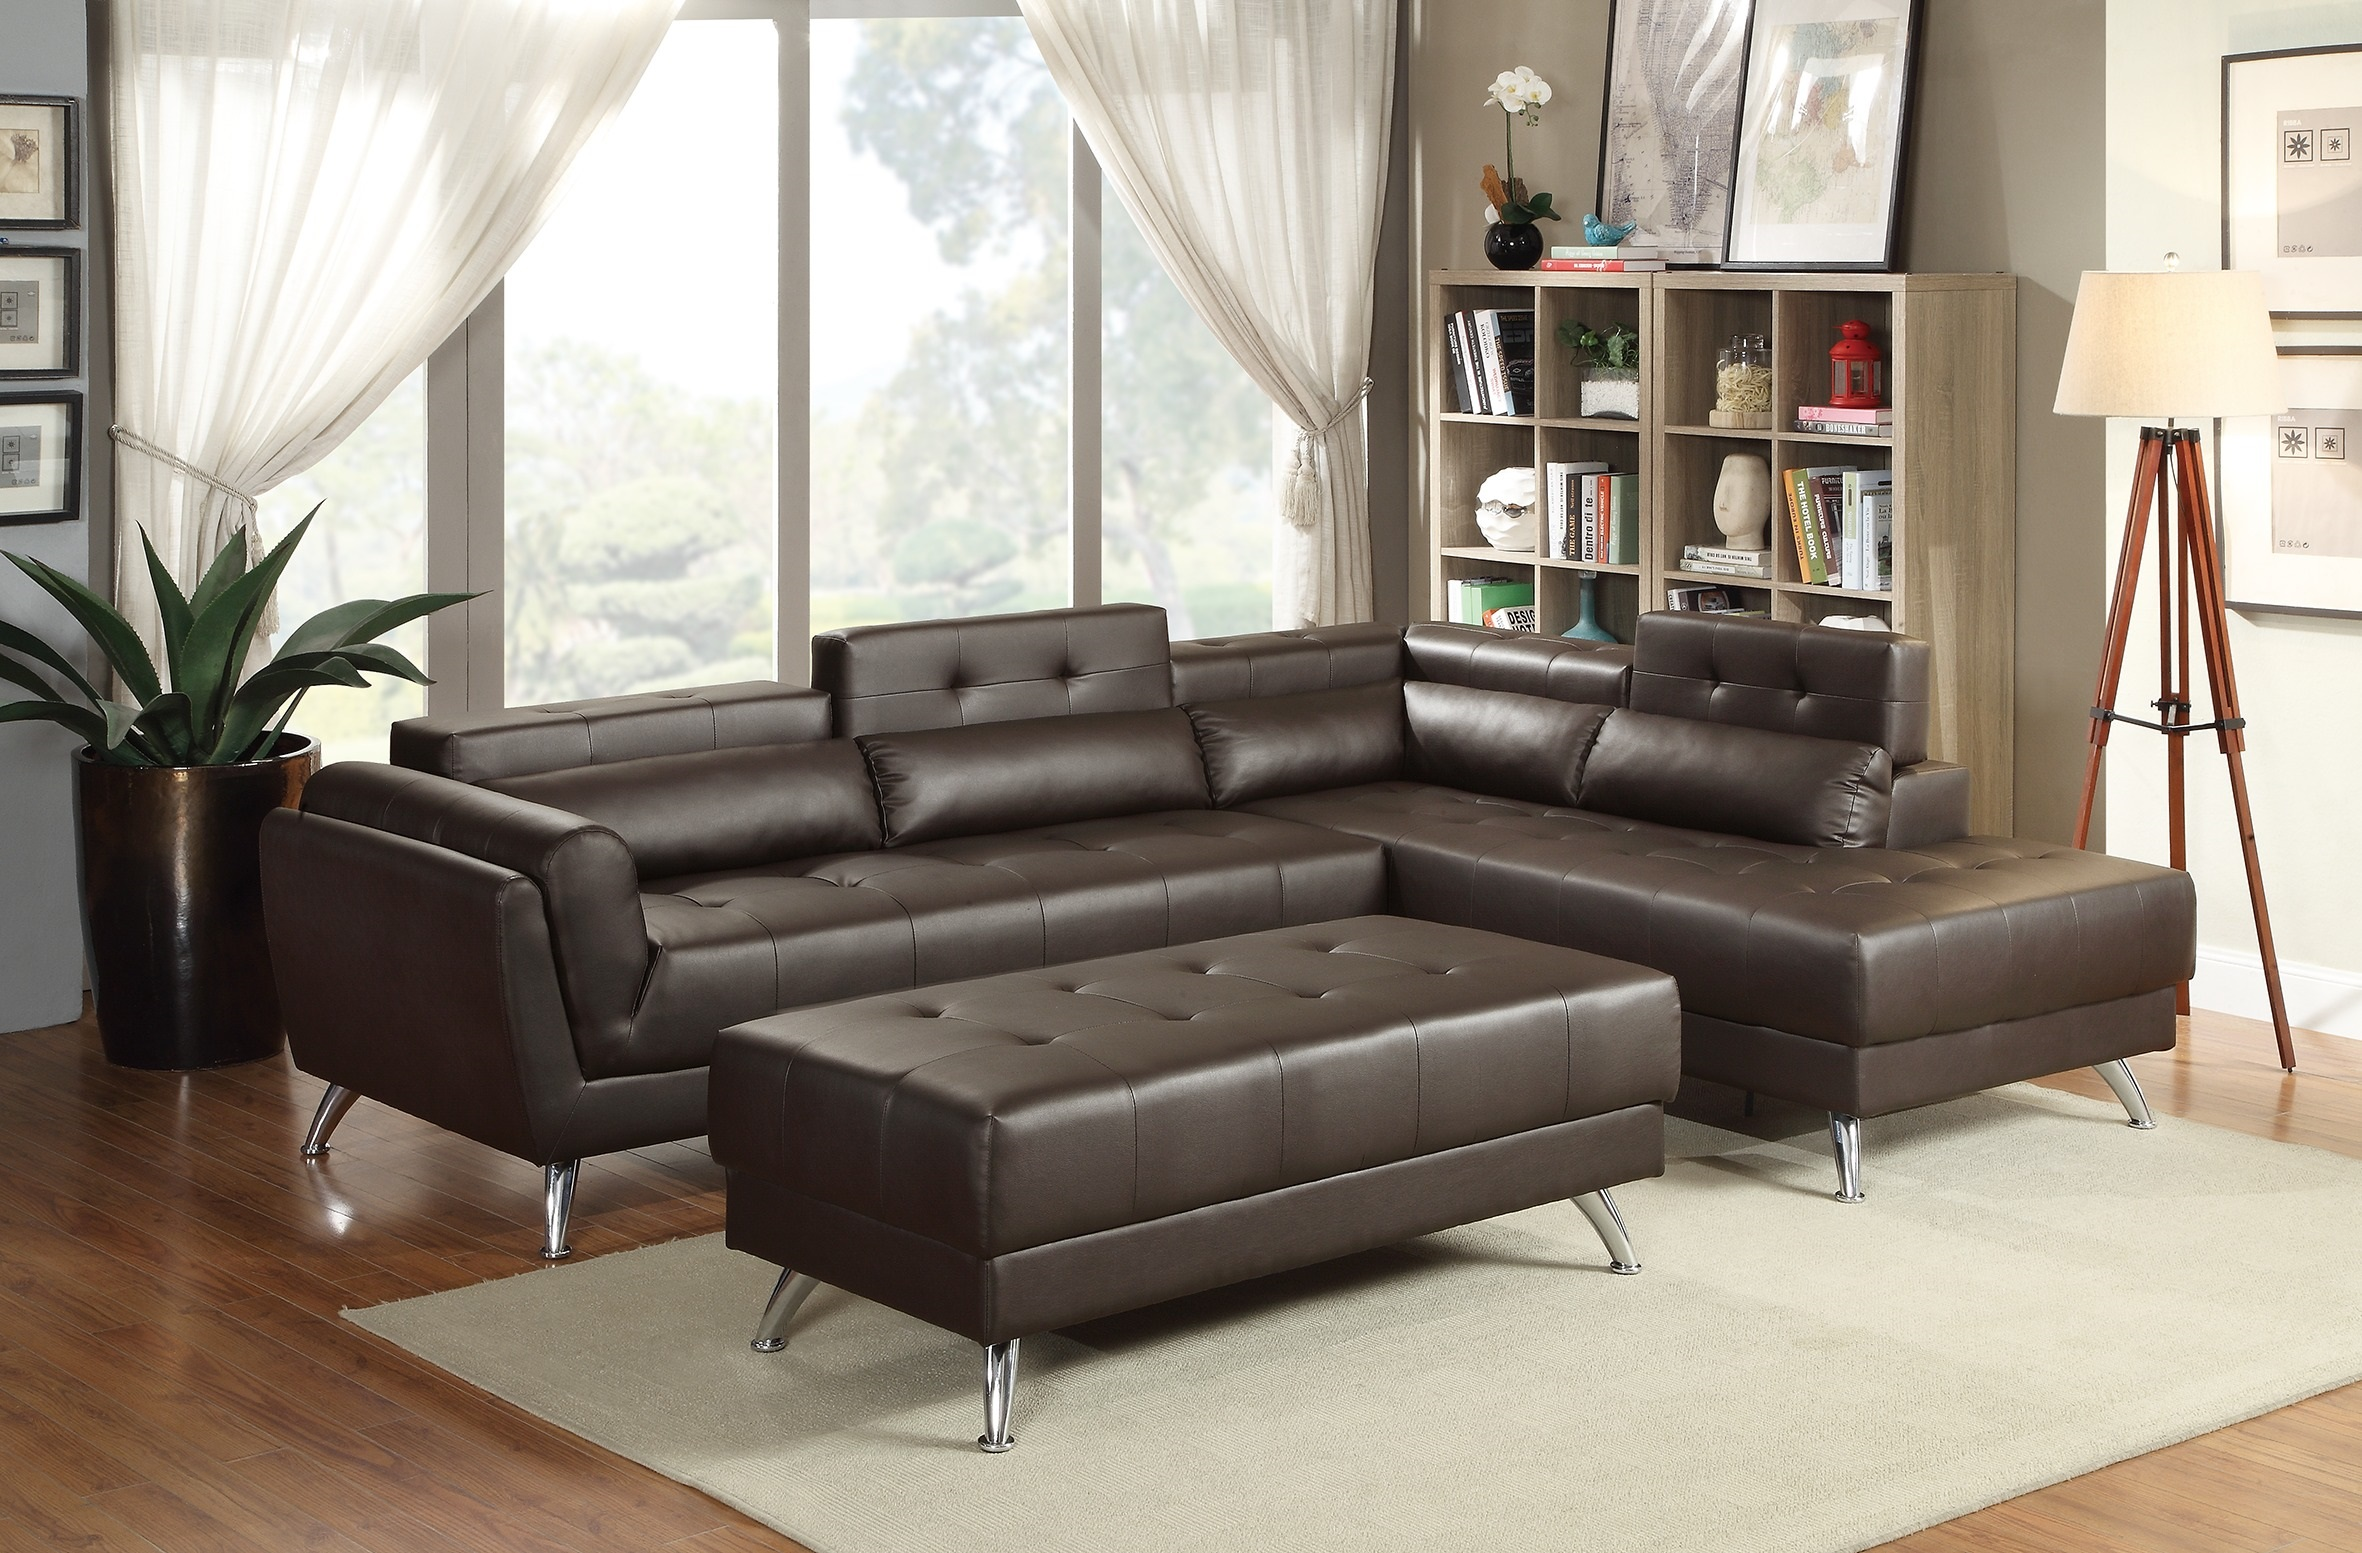 New sectional poundex leather espresso sofa hot sectionals for Bonded leather sectional with chaise